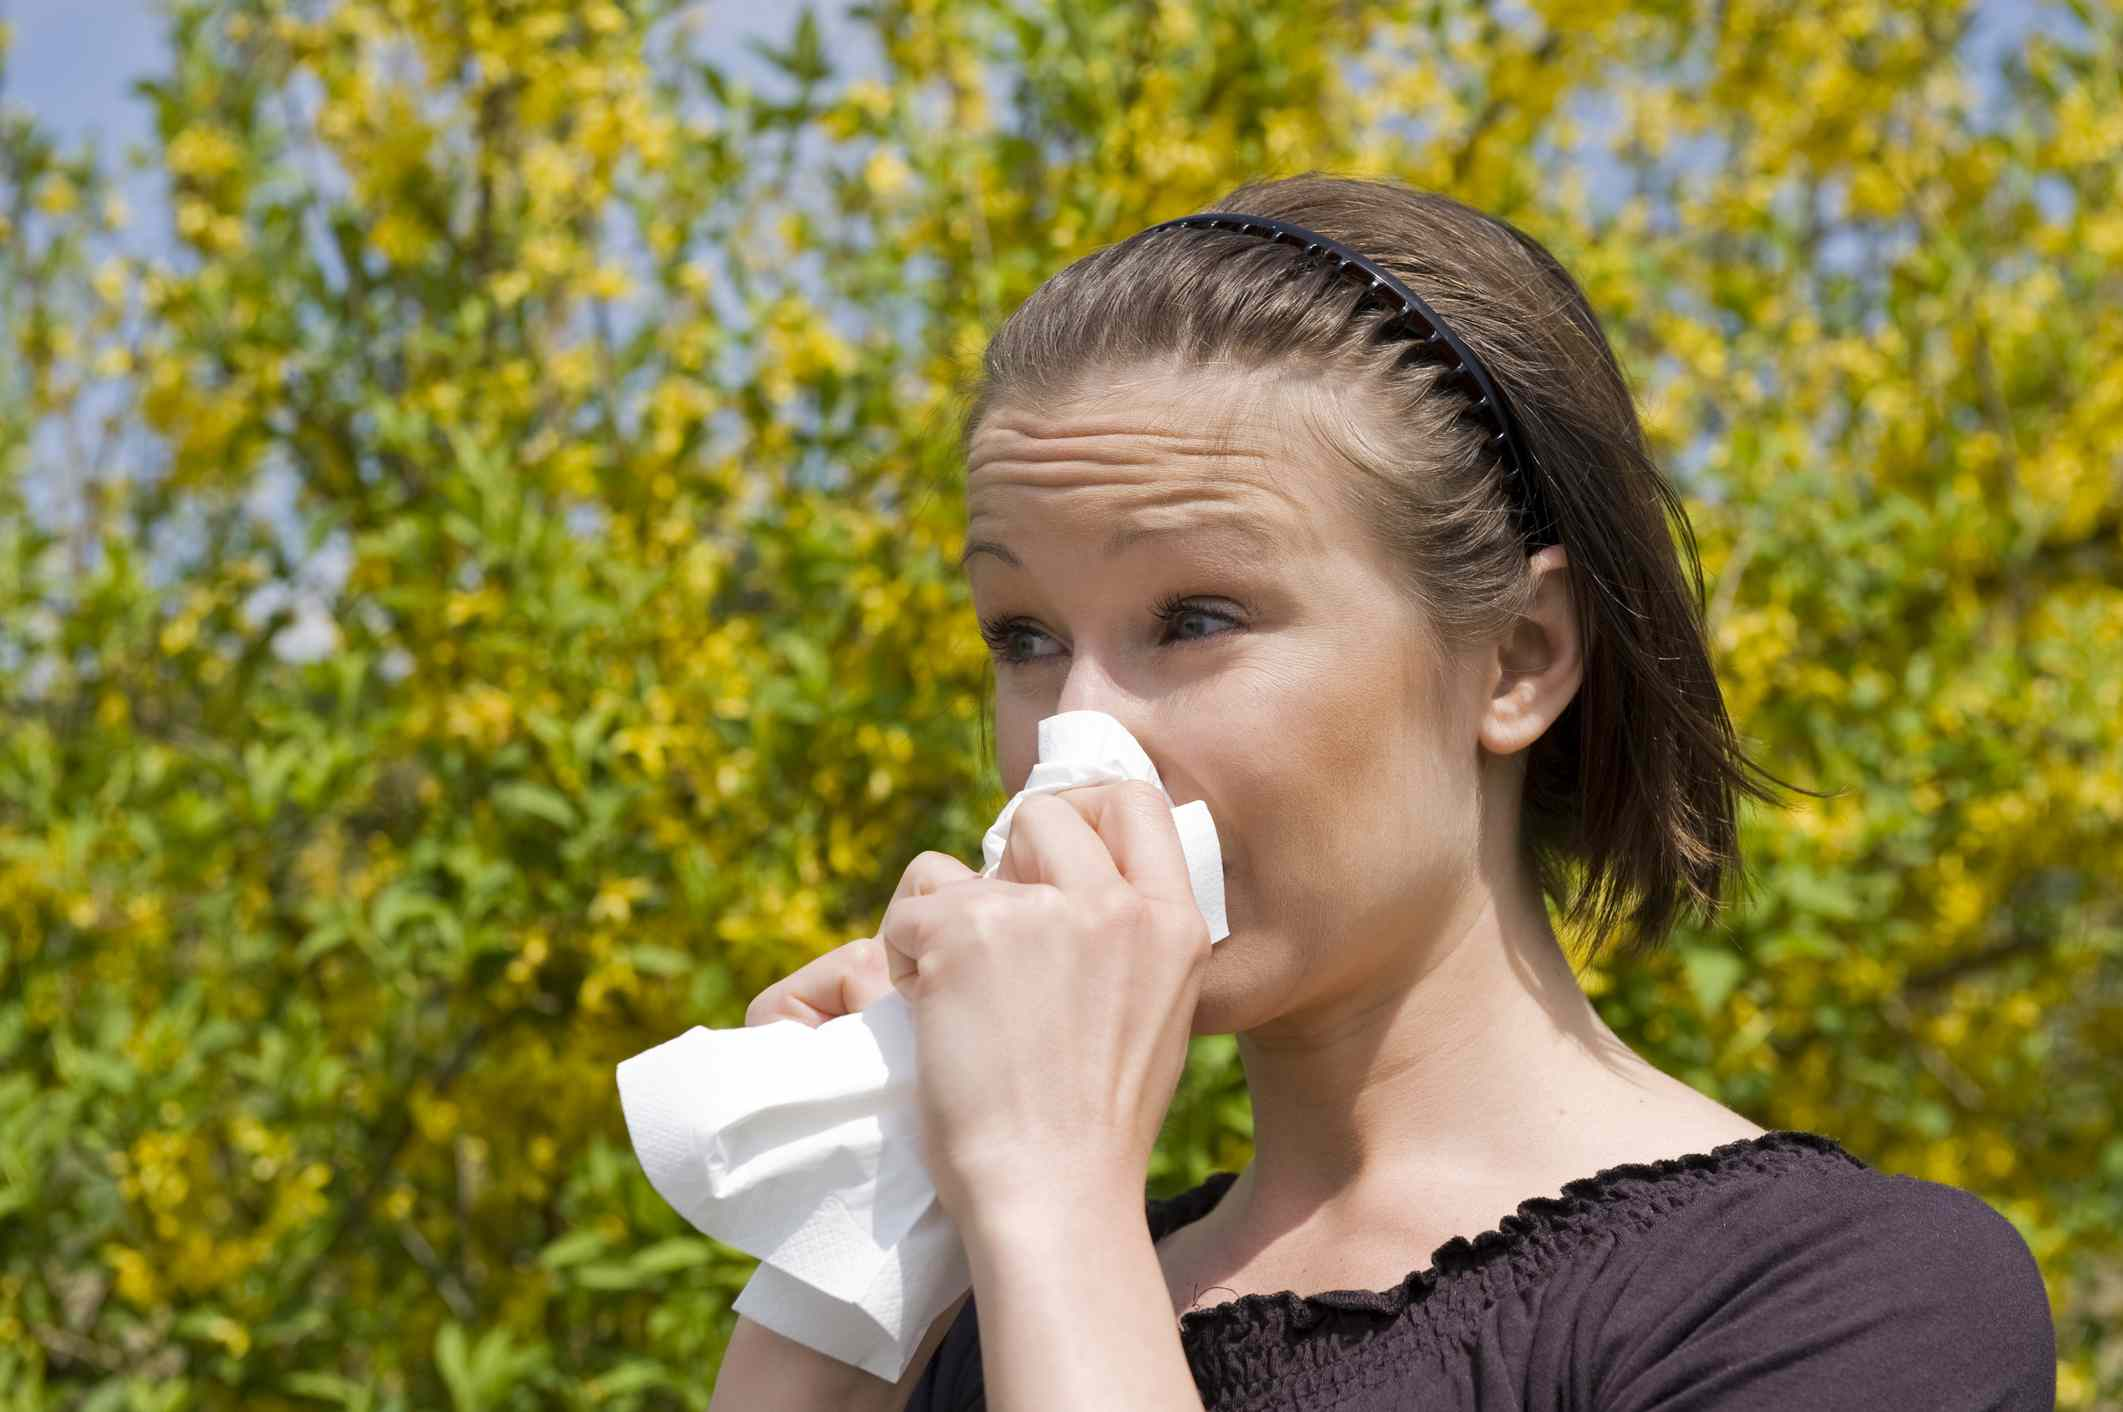 Young woman blowing nose outdoors